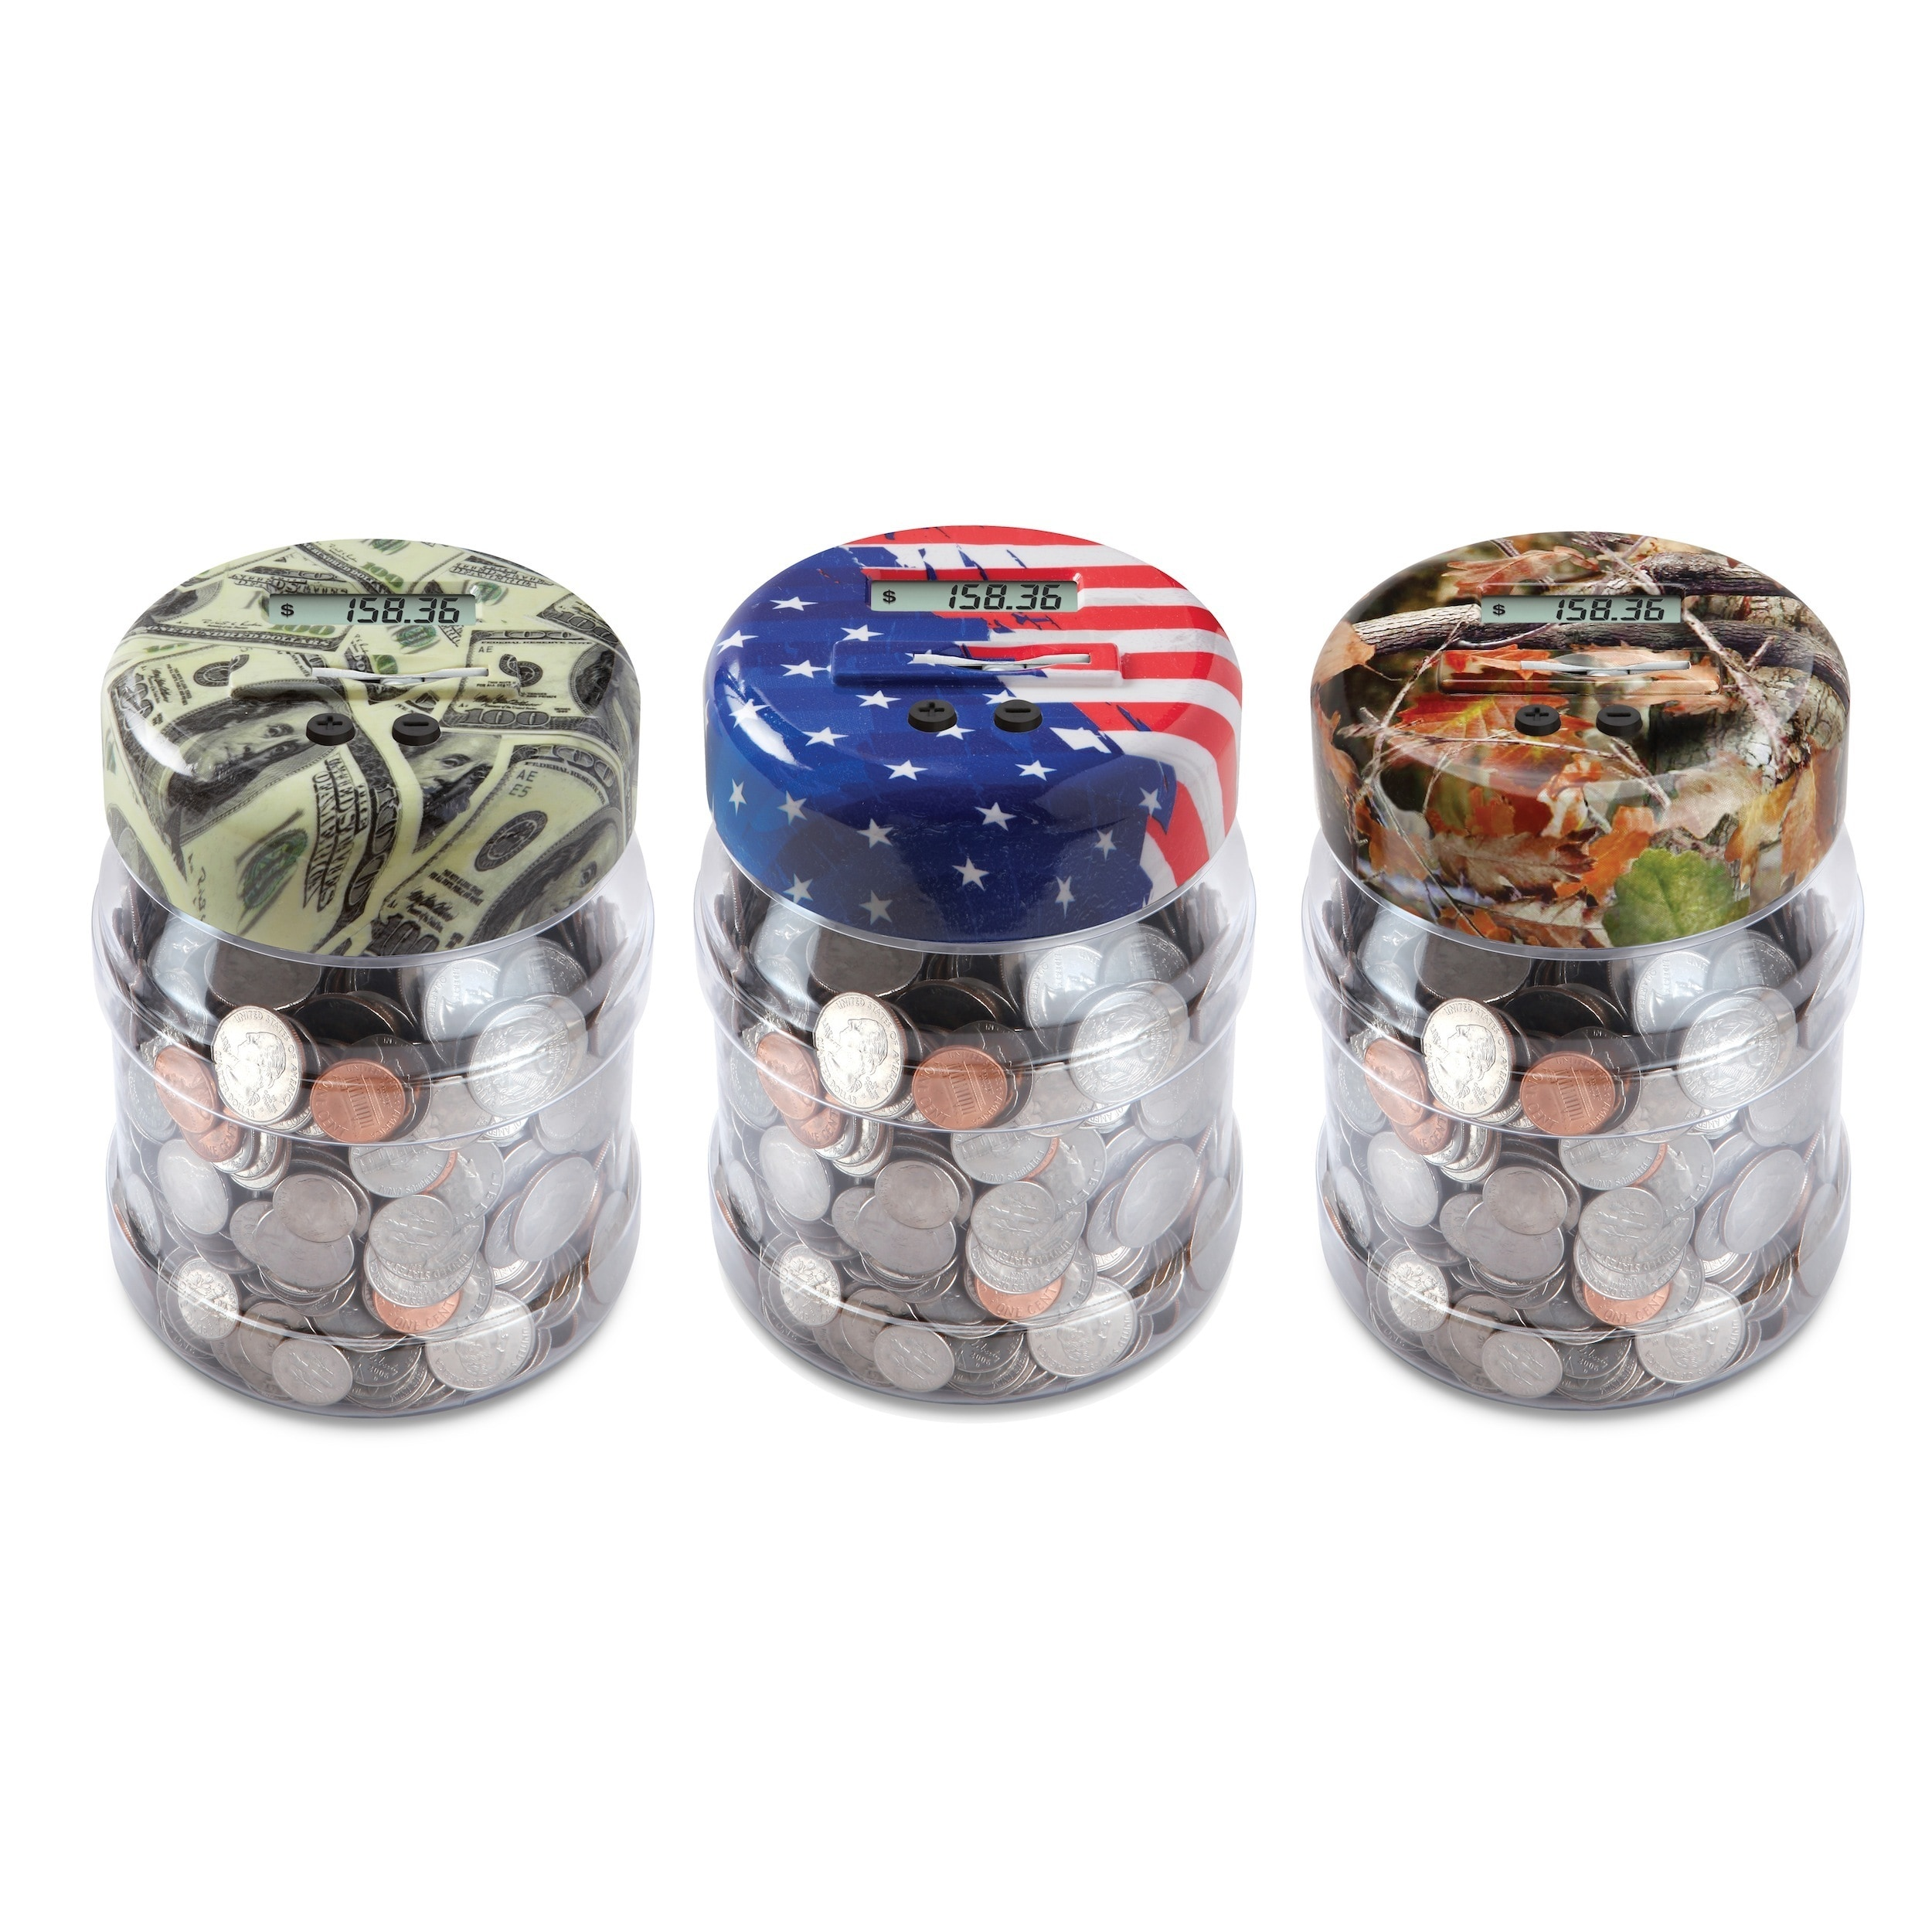 Black Series Coin Counting Jar with Designs (BS Coin Coun...